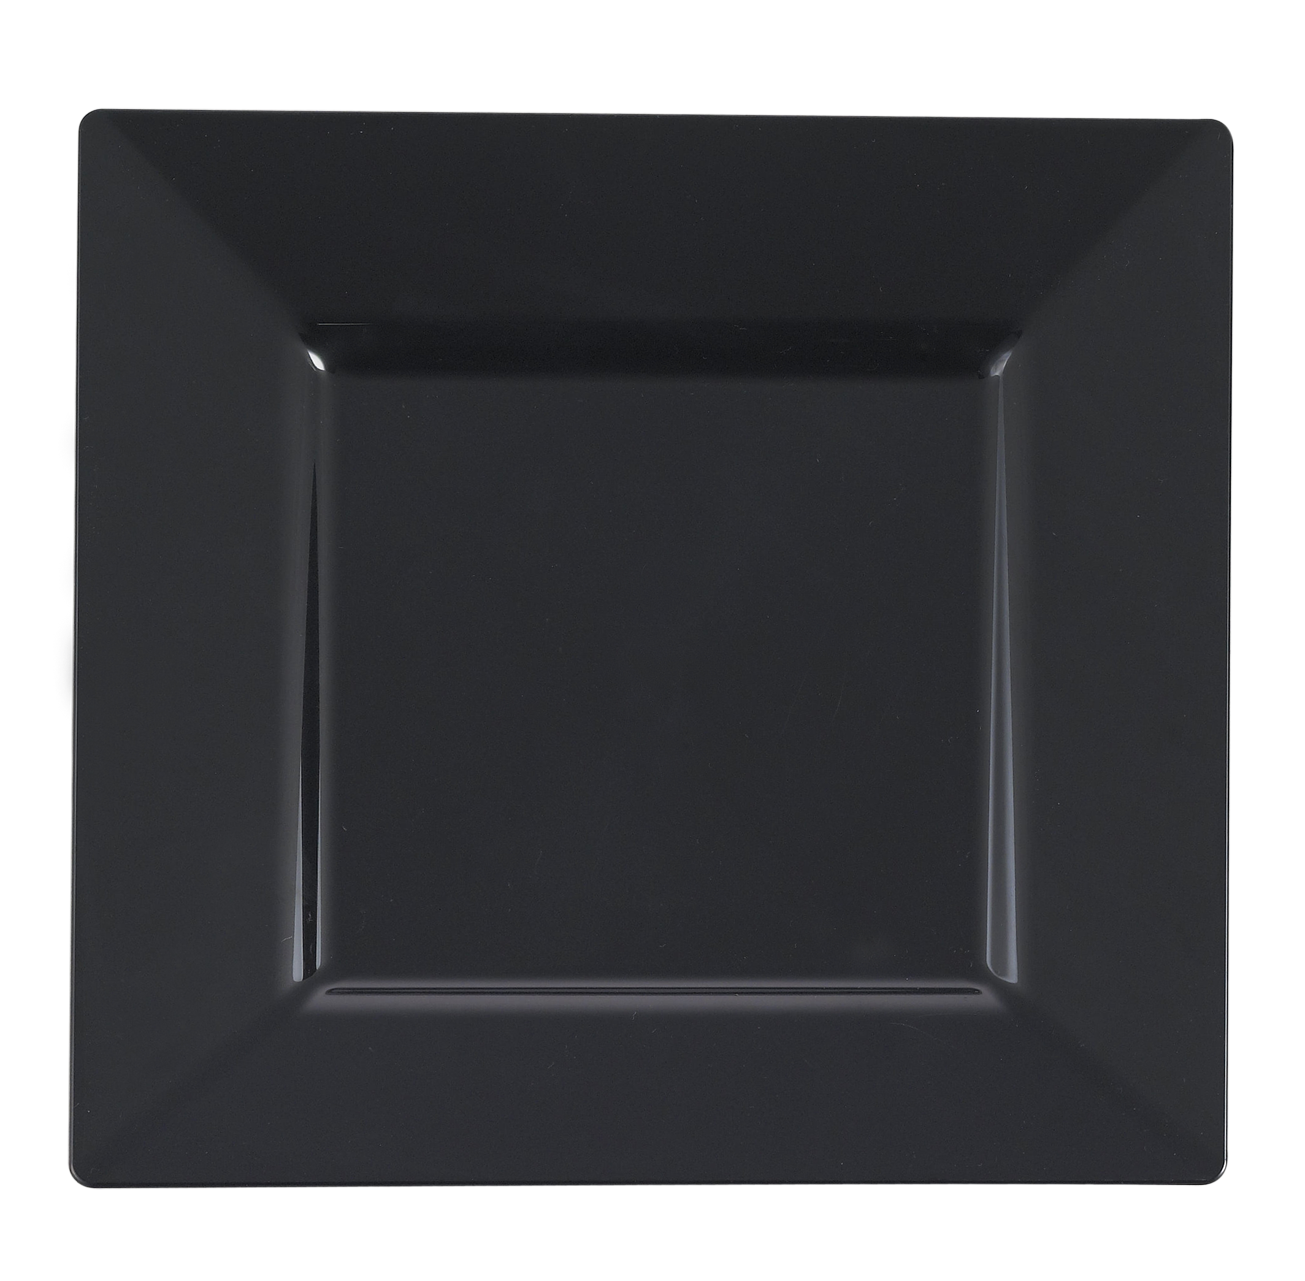 Image 2 of 2  sc 1 st  Walmart.com & Kaya Collection - Square Black Disposable Plastic Dinnerware Party ...